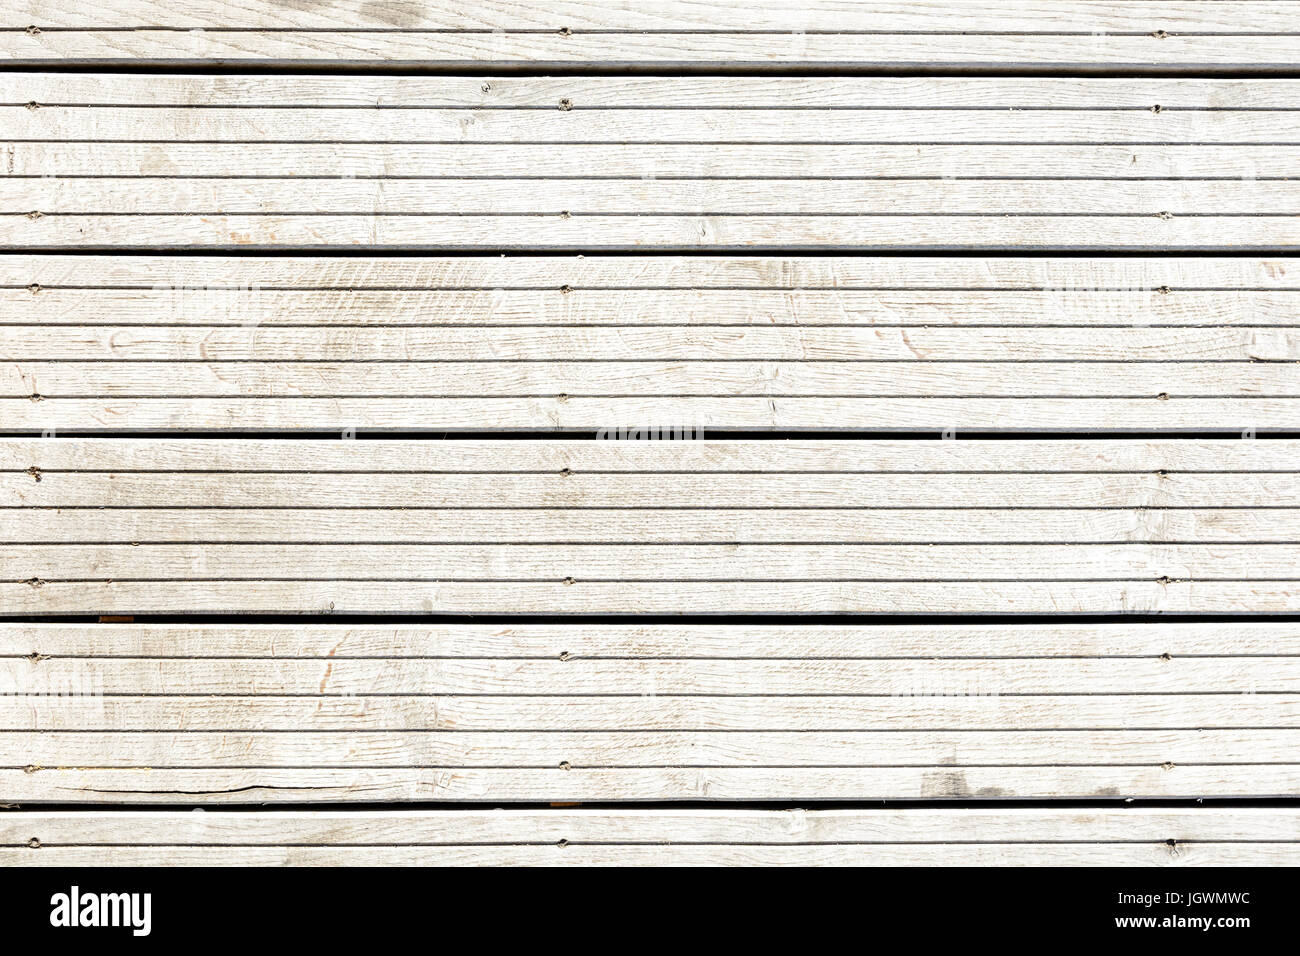 Grey teak wooden floor texture background. Stock Photo